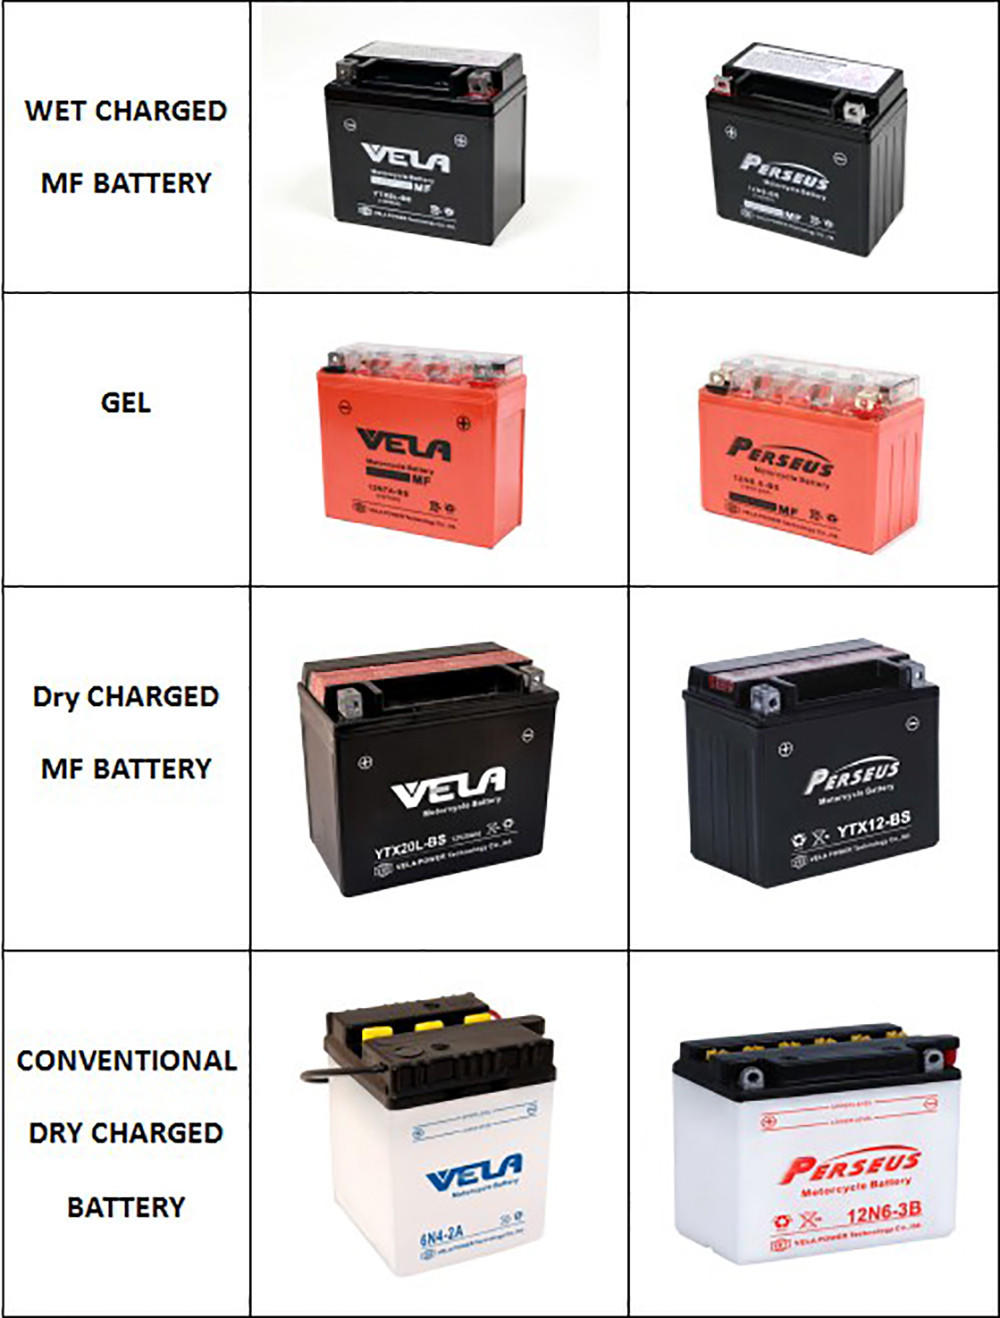 VELA mf battery excellent for autocycle